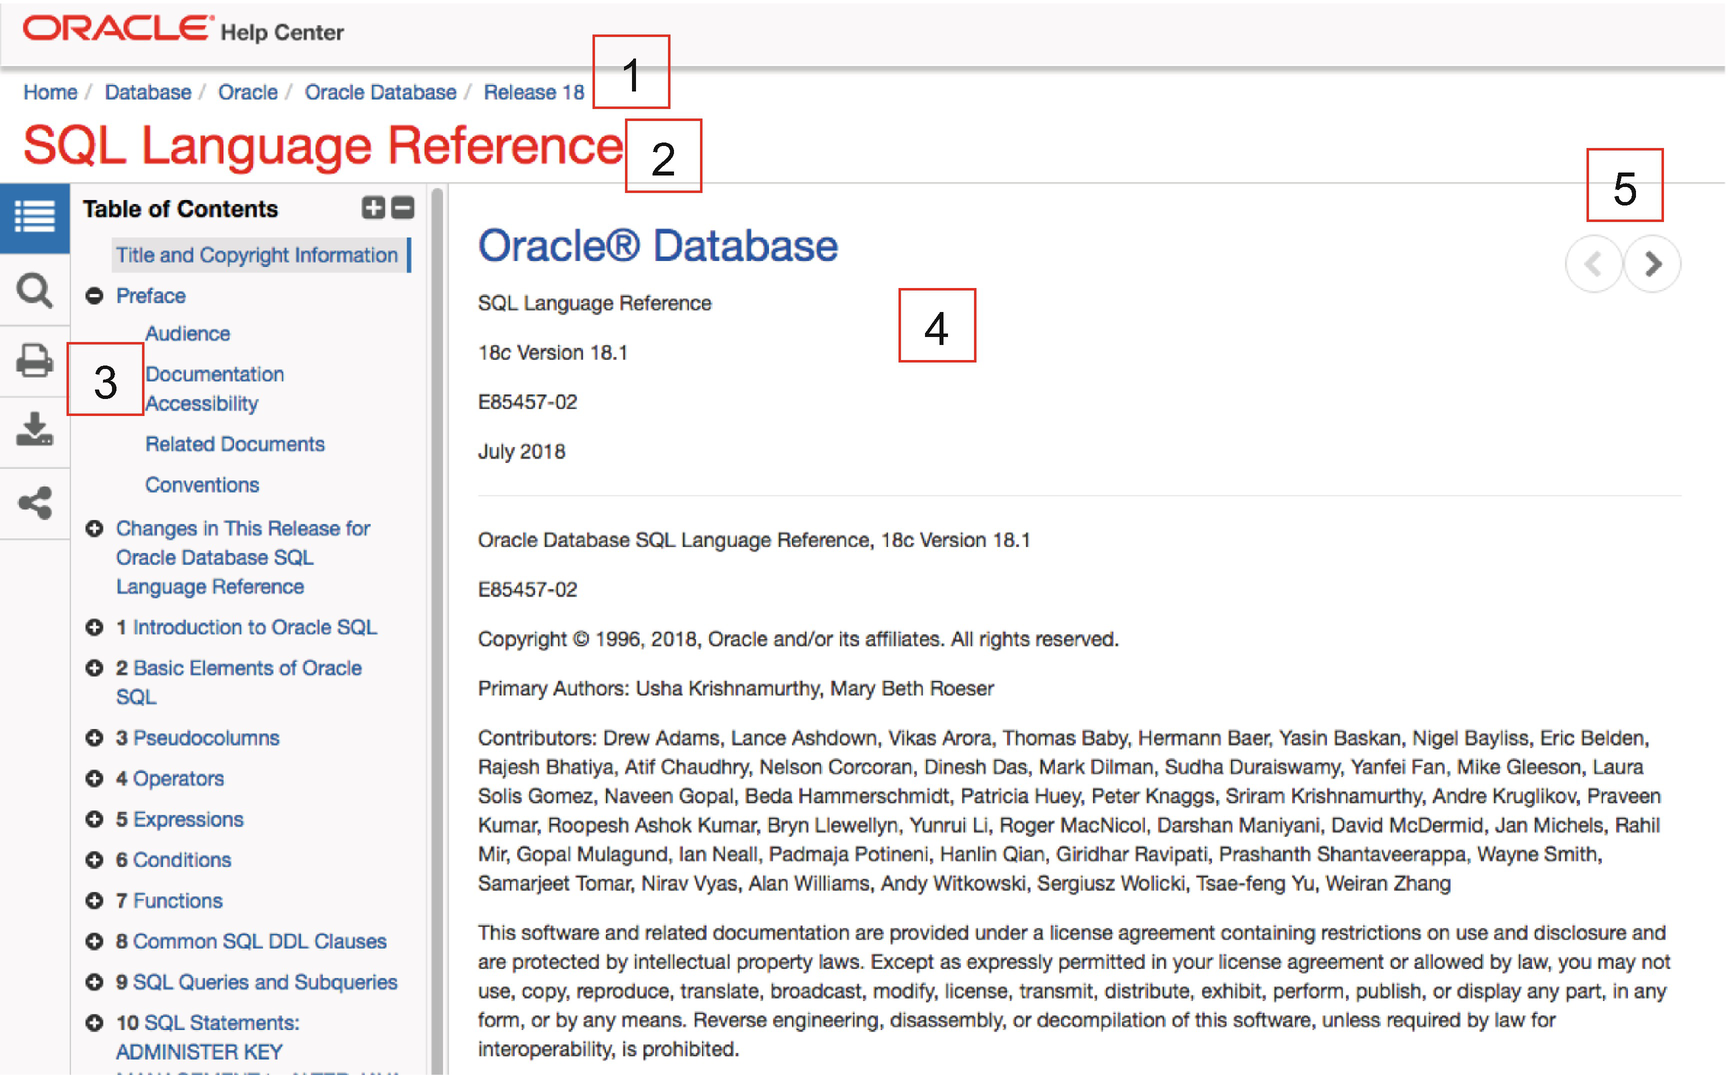 How to Find and Navigate the Oracle SQL Reference   SpringerLink